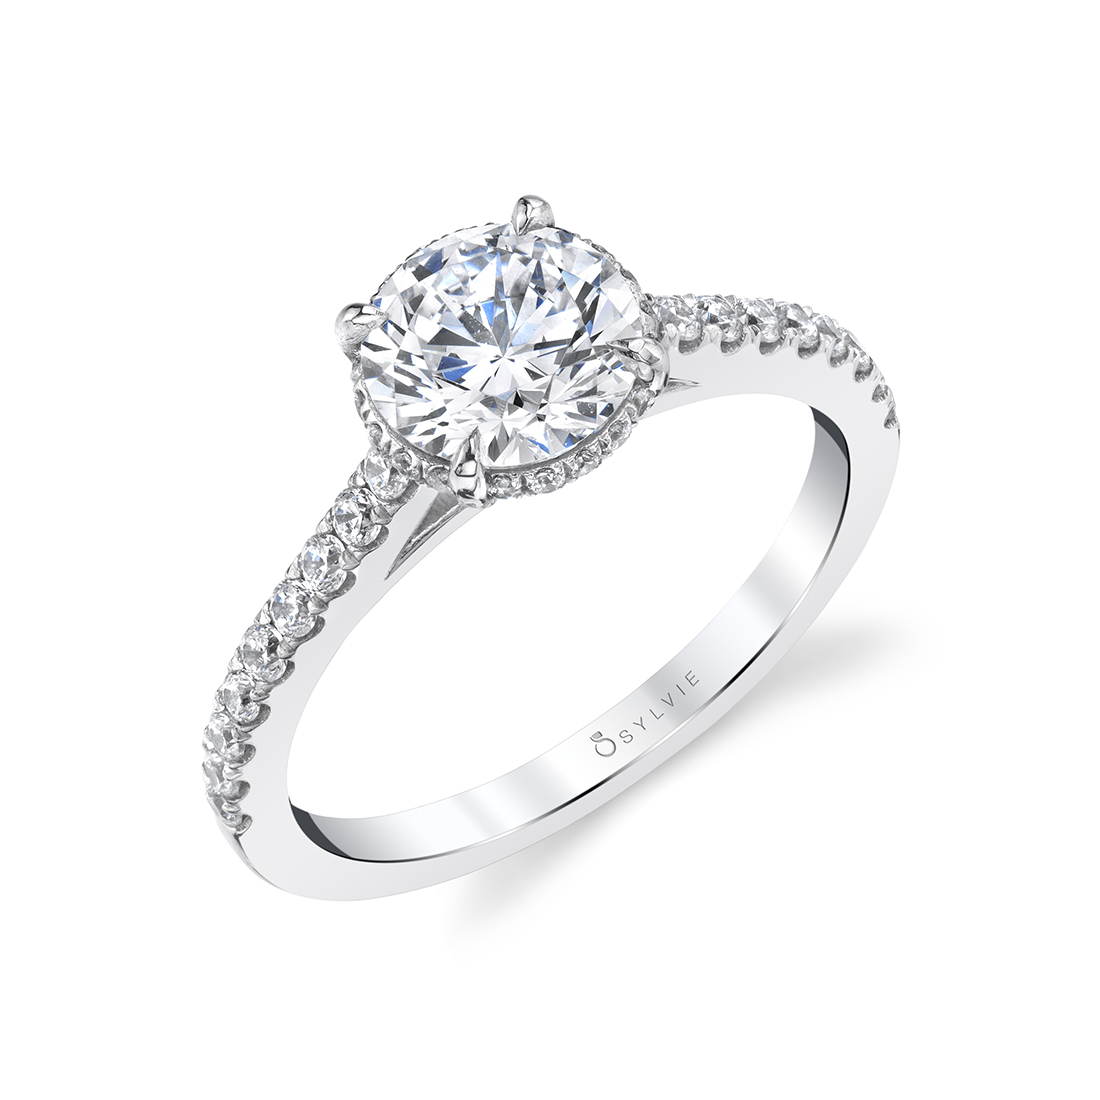 Profile Side View of Hidden Halo Engagement Ring Vienna S1950